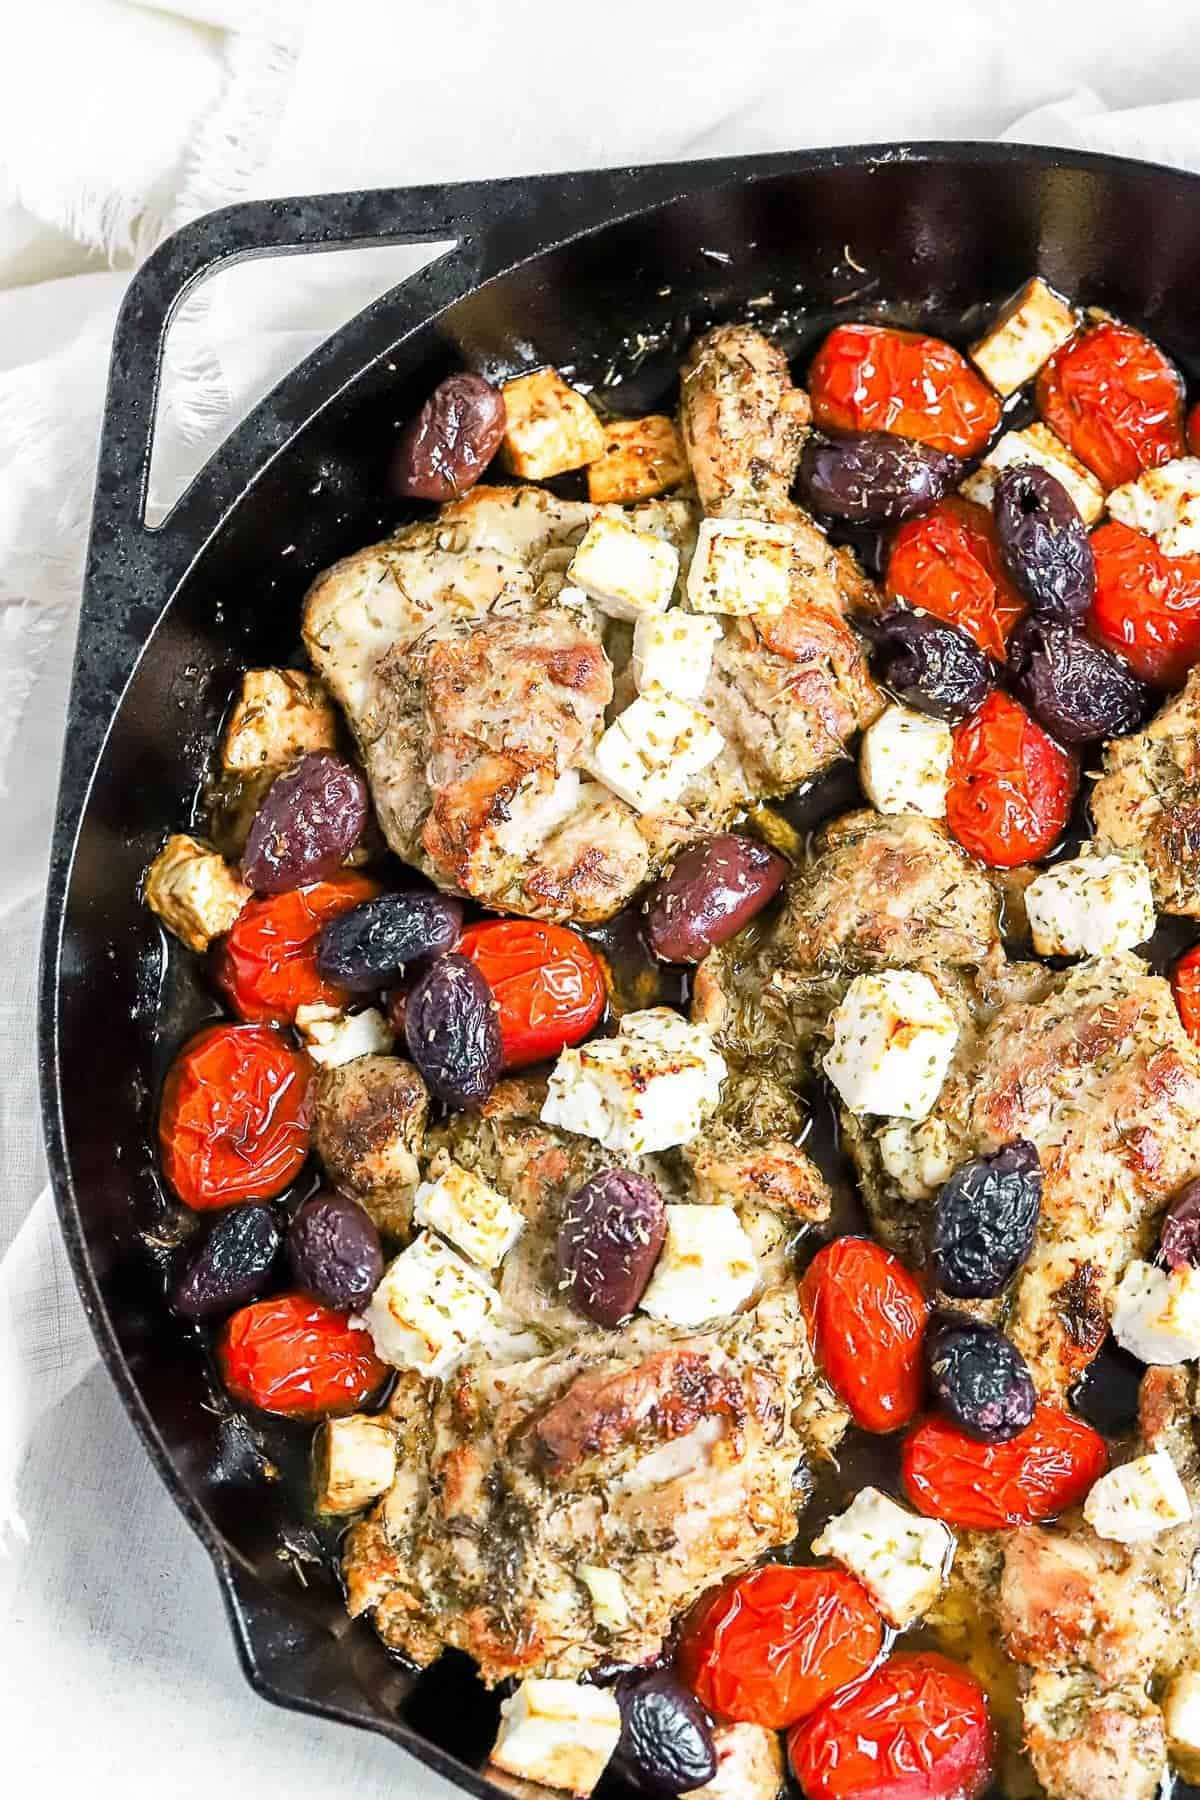 Greek chicken skillet after being cooked